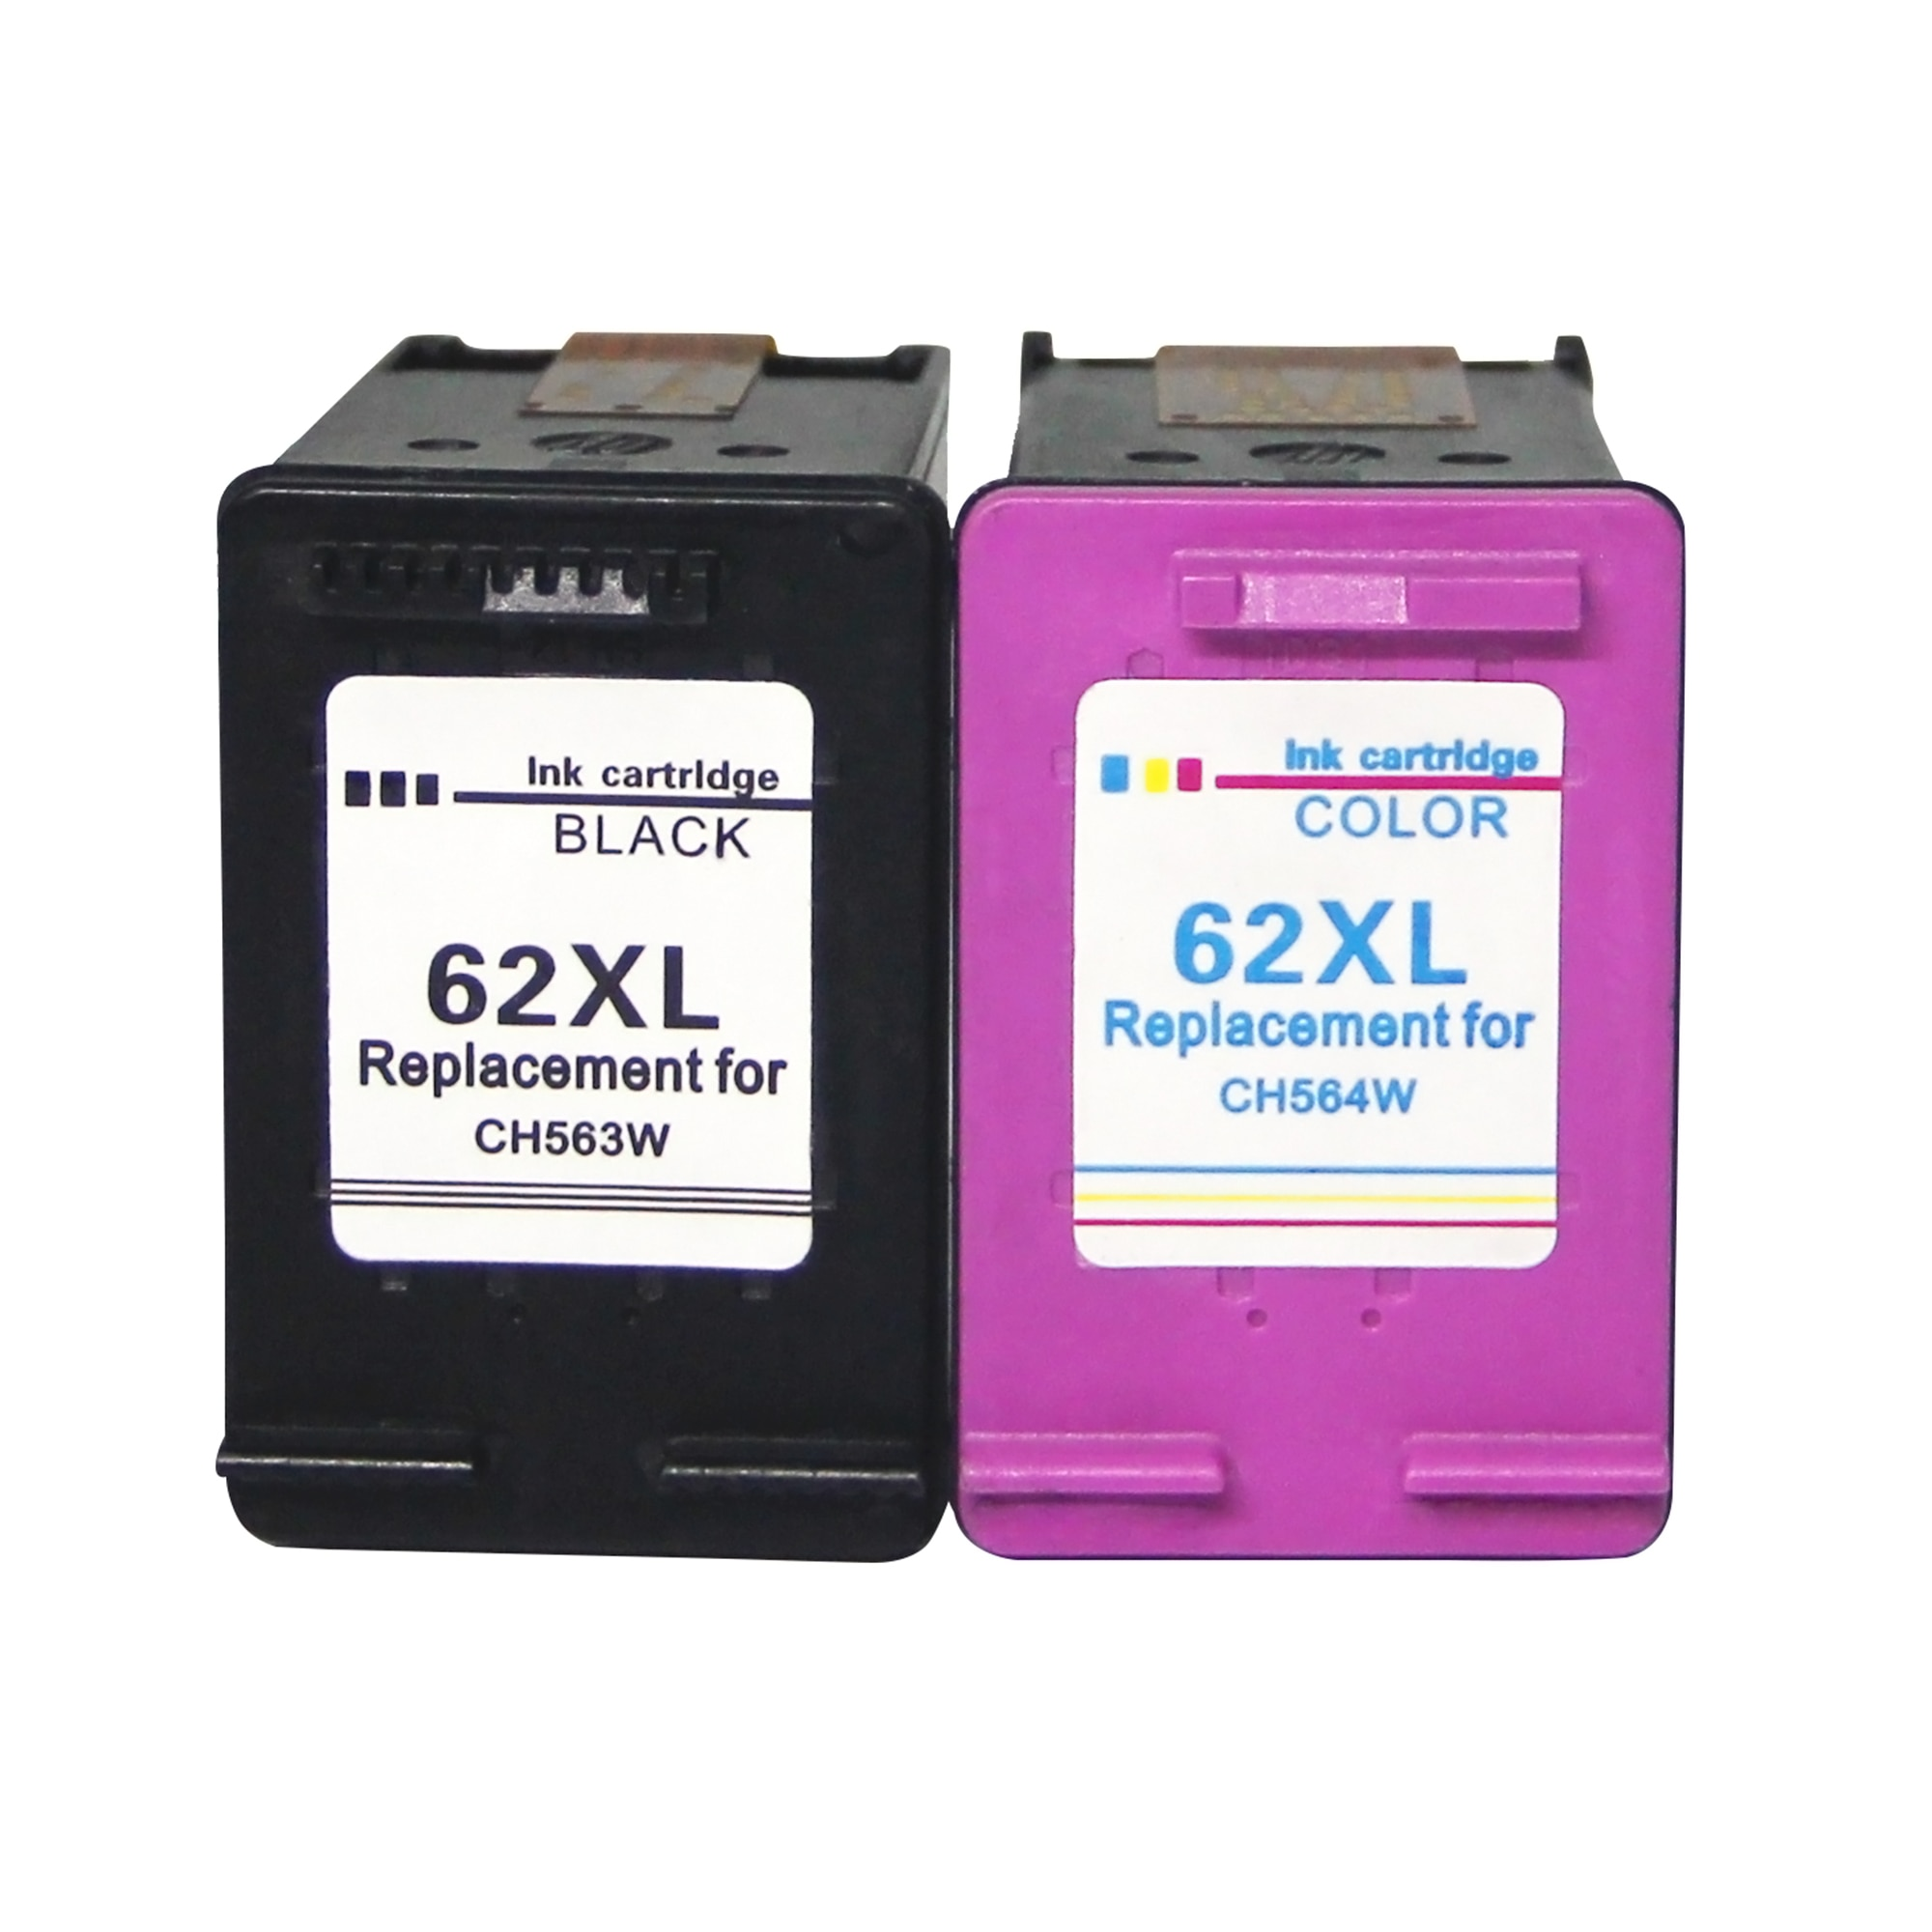 Veteran 62XL Refilled Ink Cartridge Replacement for hp 62 XL hp62 for HP Envy 5640 OfficeJet 200 250 5540 5740 5542 7640 printer